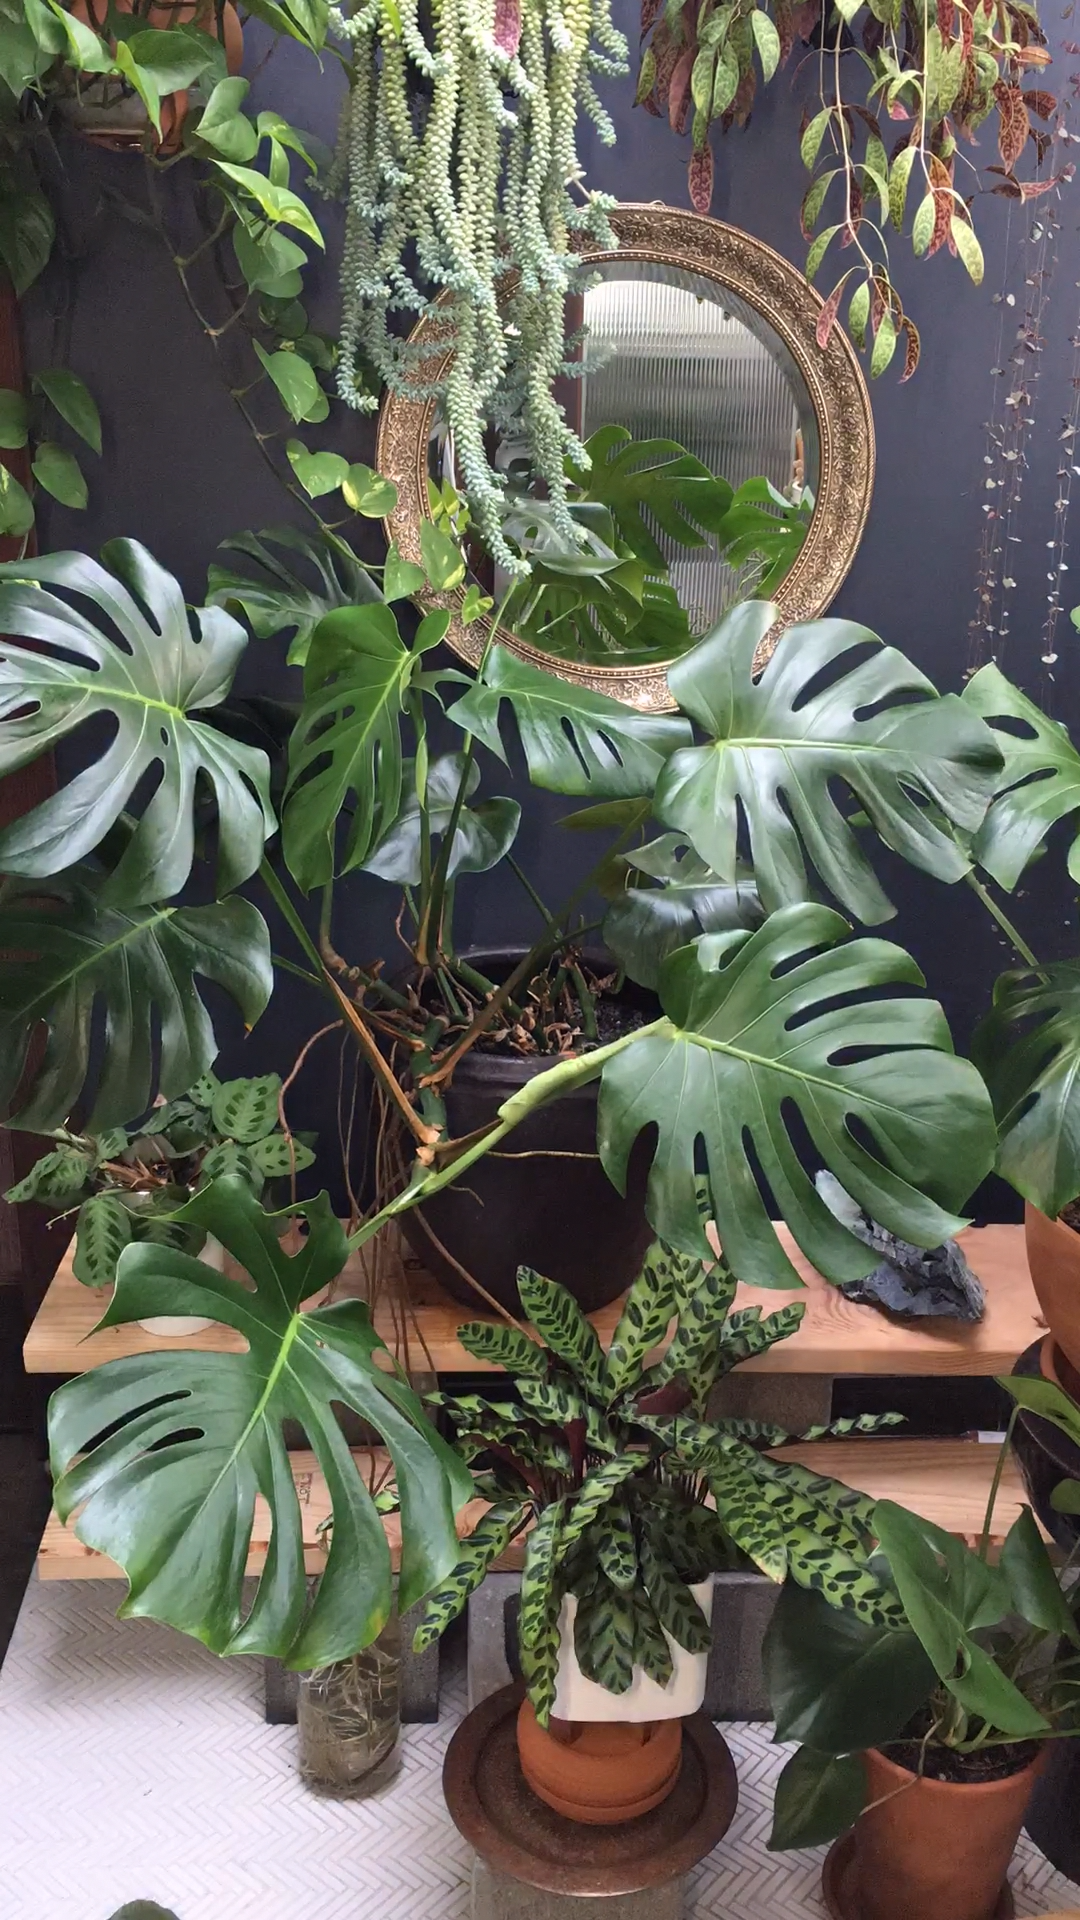 The monstera plant is a relatively easy plant to care for. Learn how to properly care for, grow and propagate your monstera deliciosa so that it thrives in your home.   #sacredelements #monstera #houseplants #houseplantclub